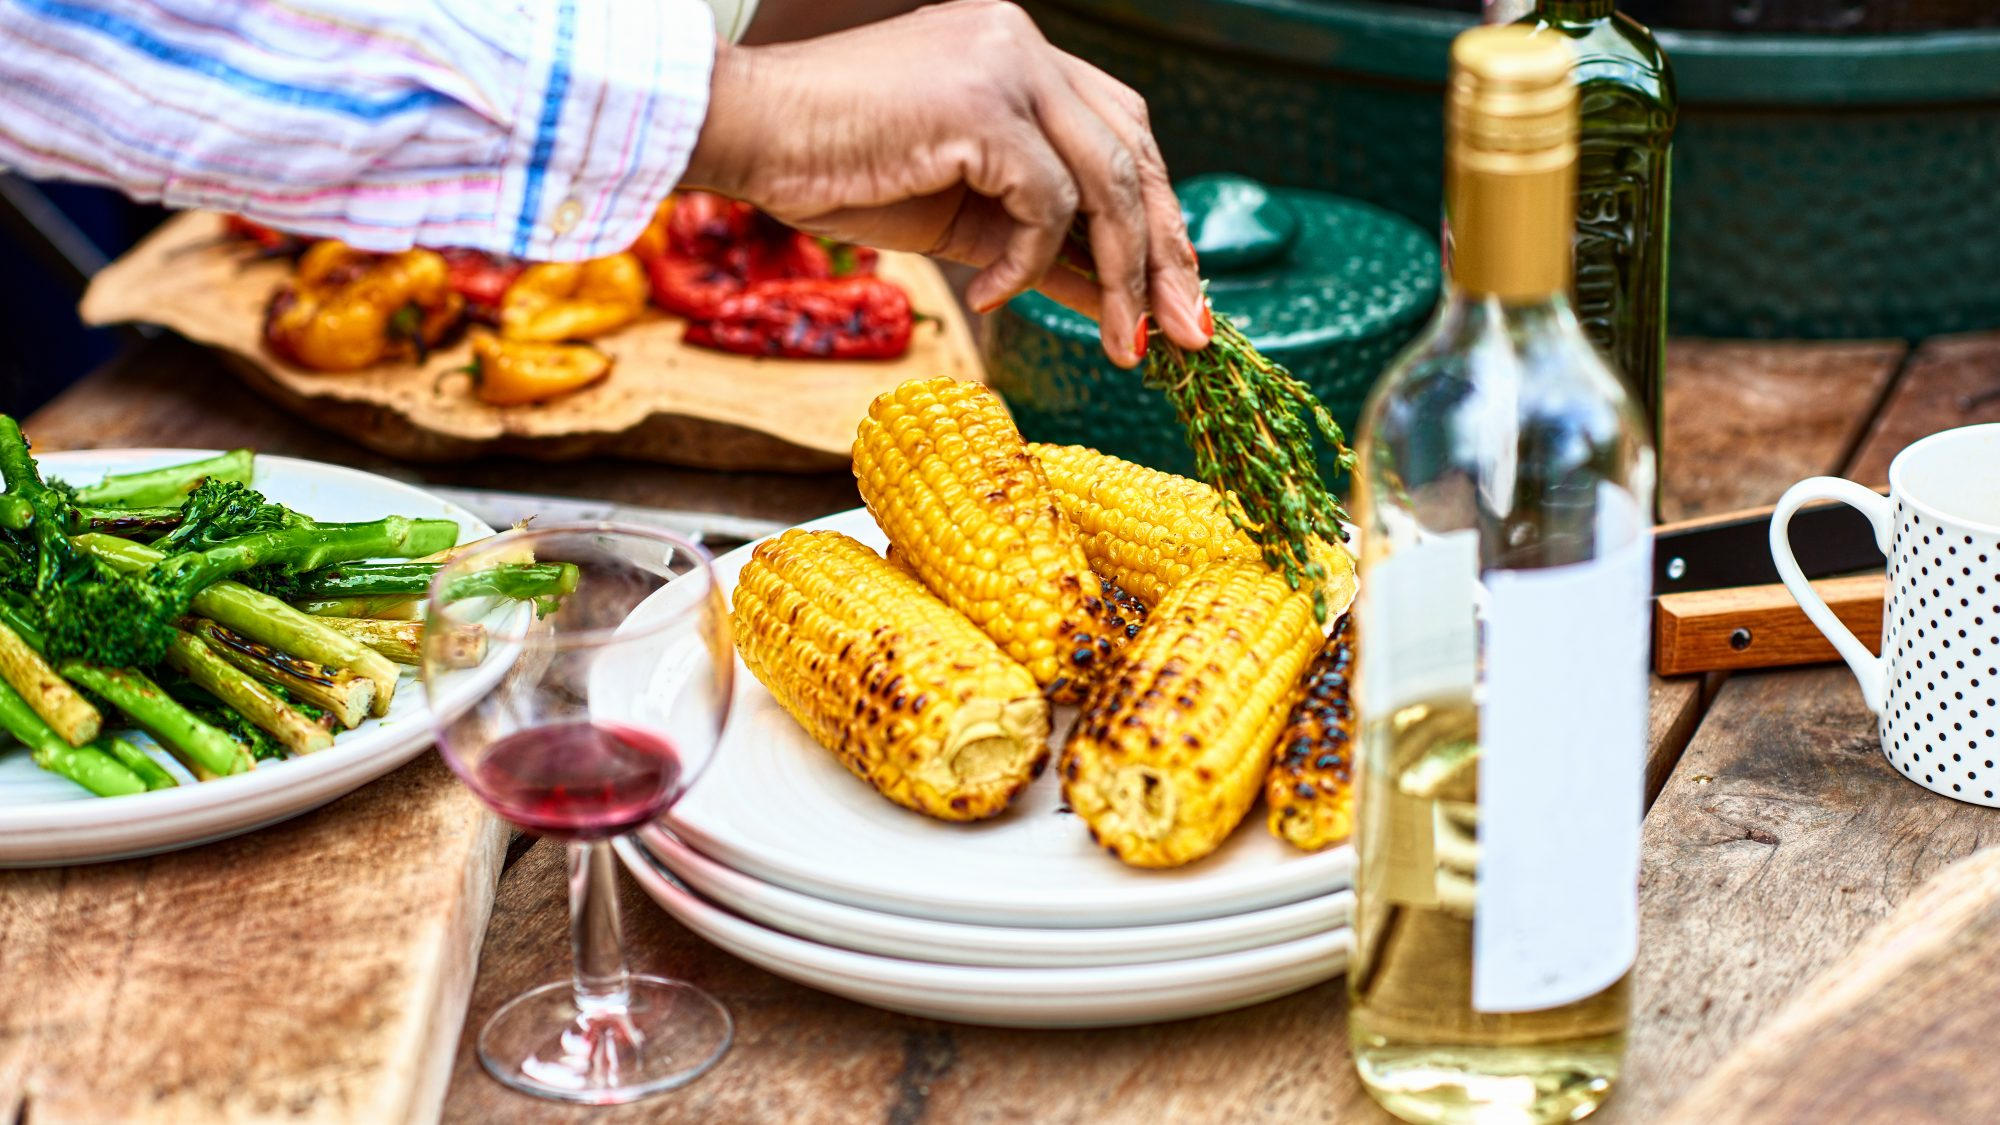 bbq and wine pairing: corn on the cob